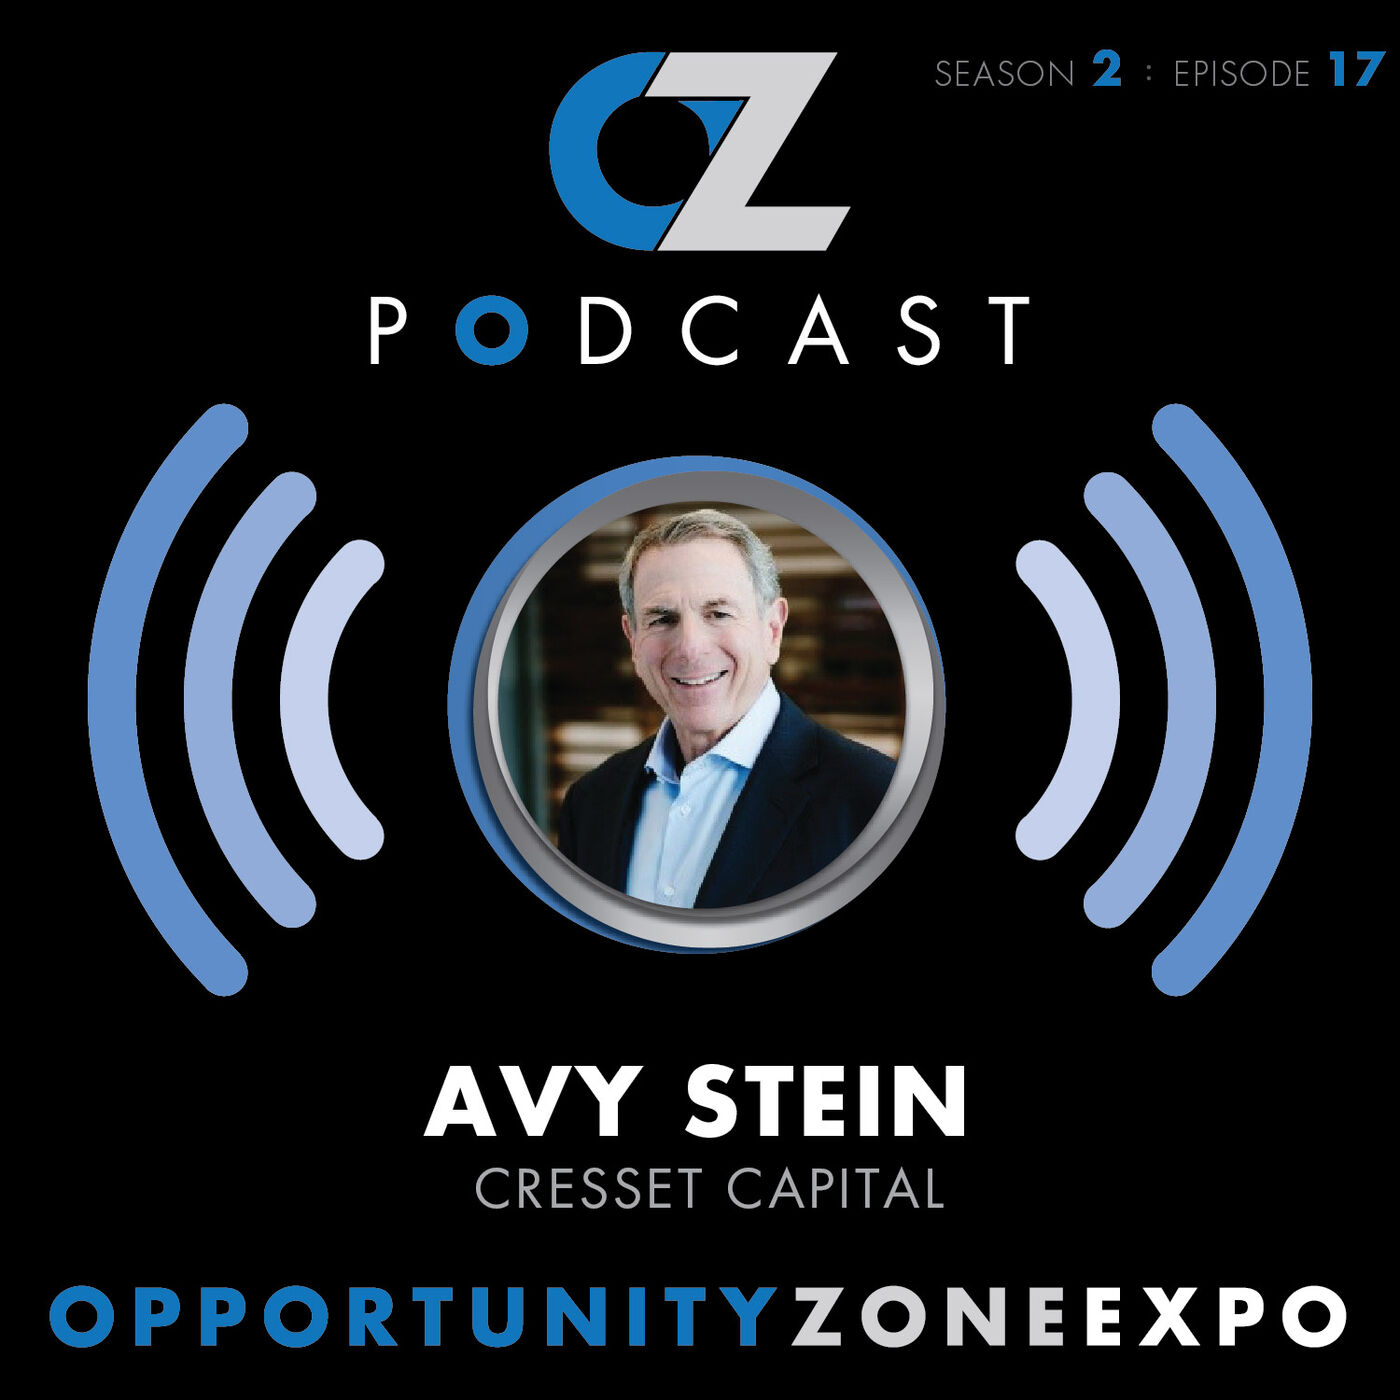 Avy Stein - Creating Capitalism to Drive Results in Underinvested Communities